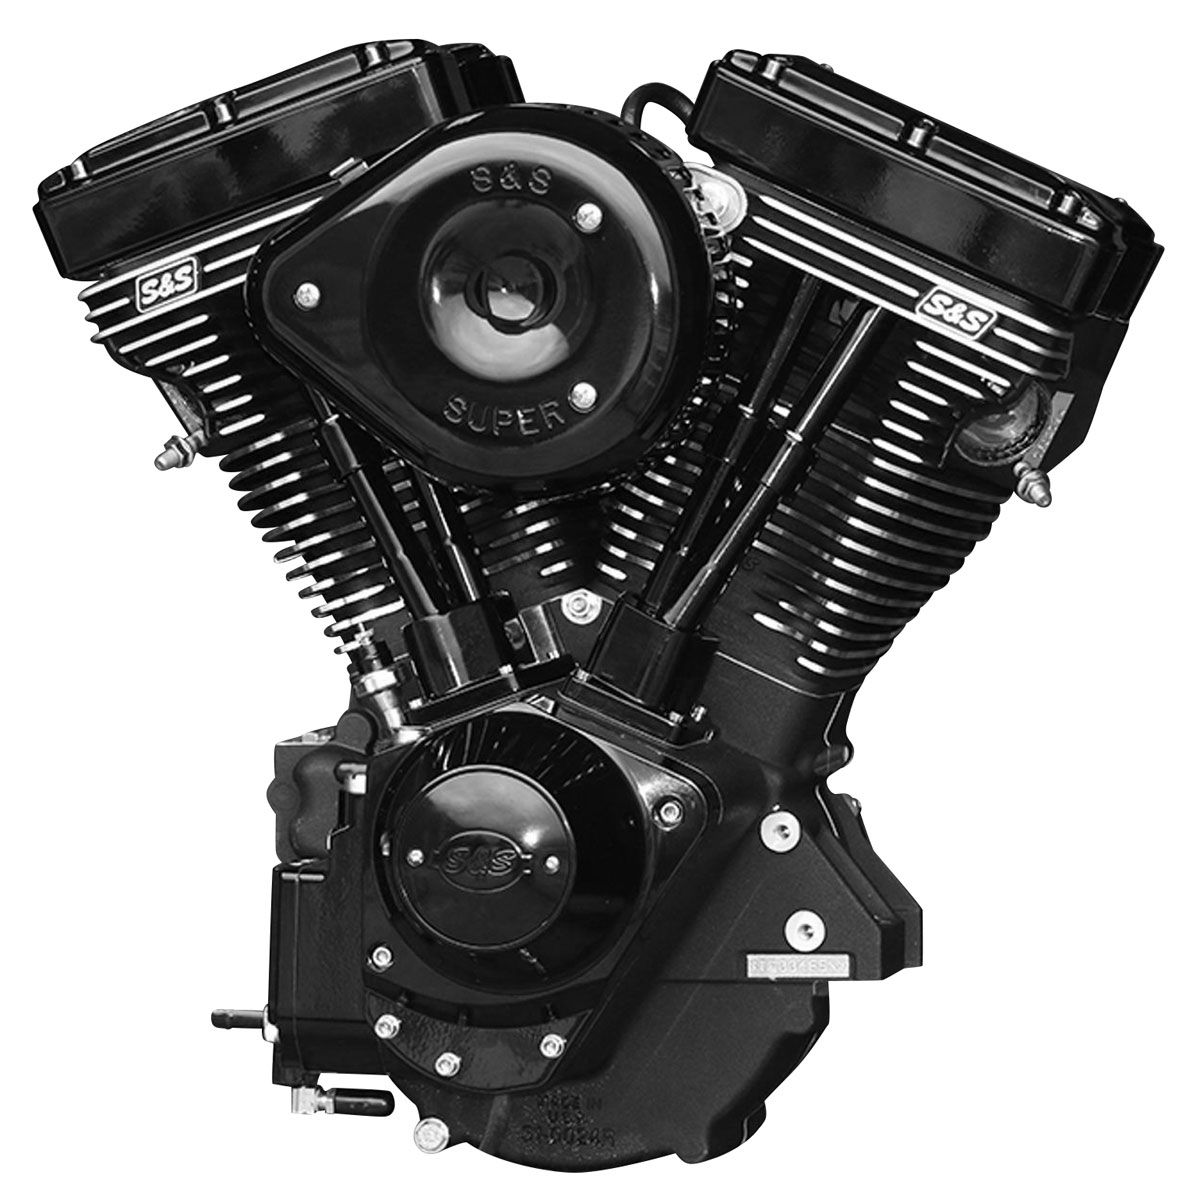 S&S Cycle V111 V Series Black Edition Complete Engine with 585 Camshaft